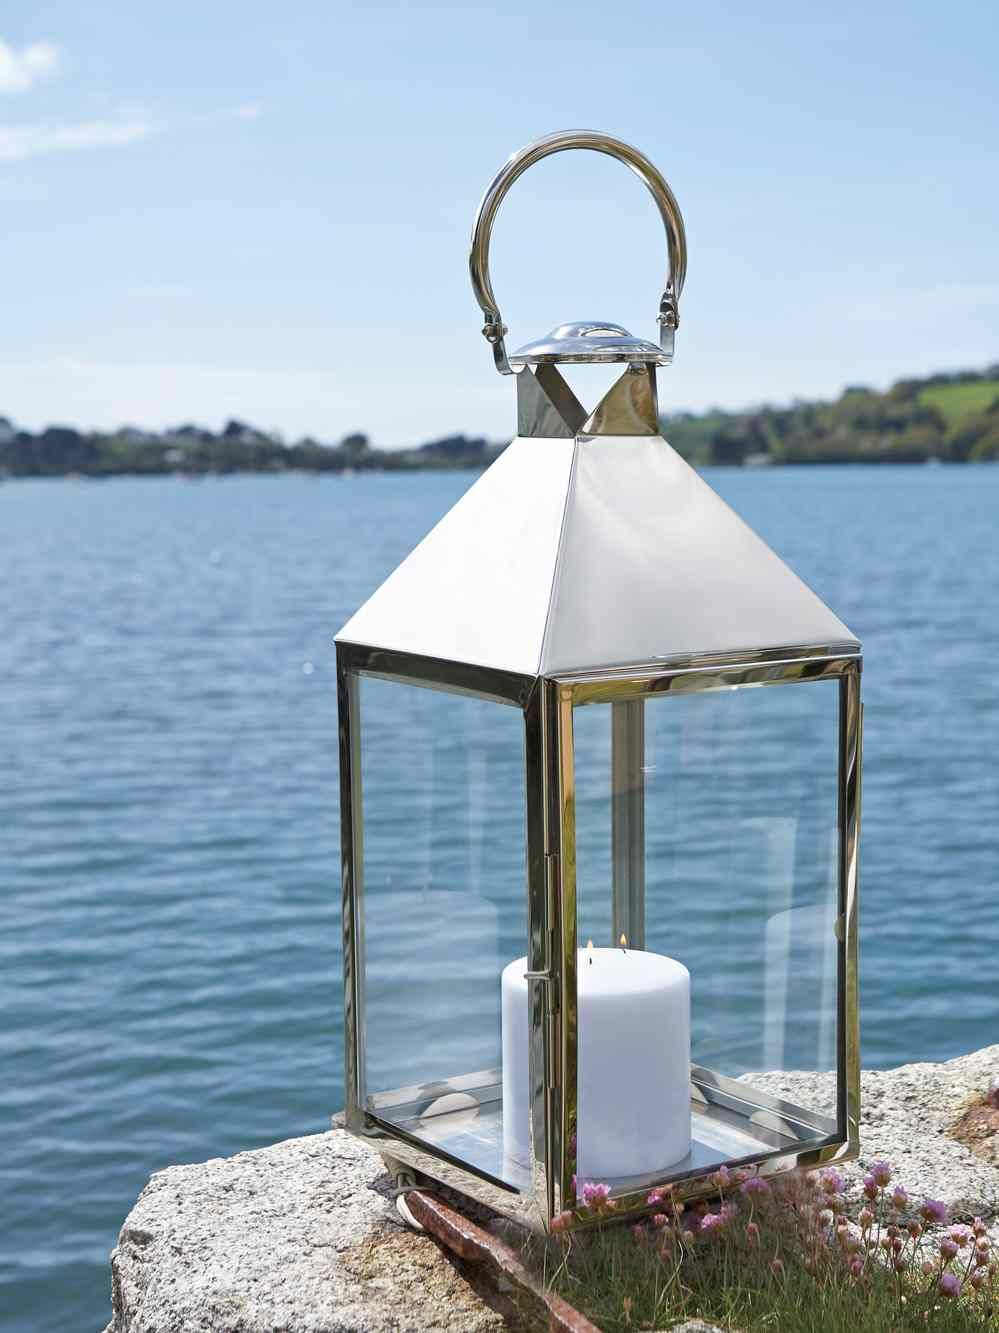 Big Stainless Steel Lanterns Indoor Candle Lanterns Candle Lanterns Outdoor Candle Lanterns